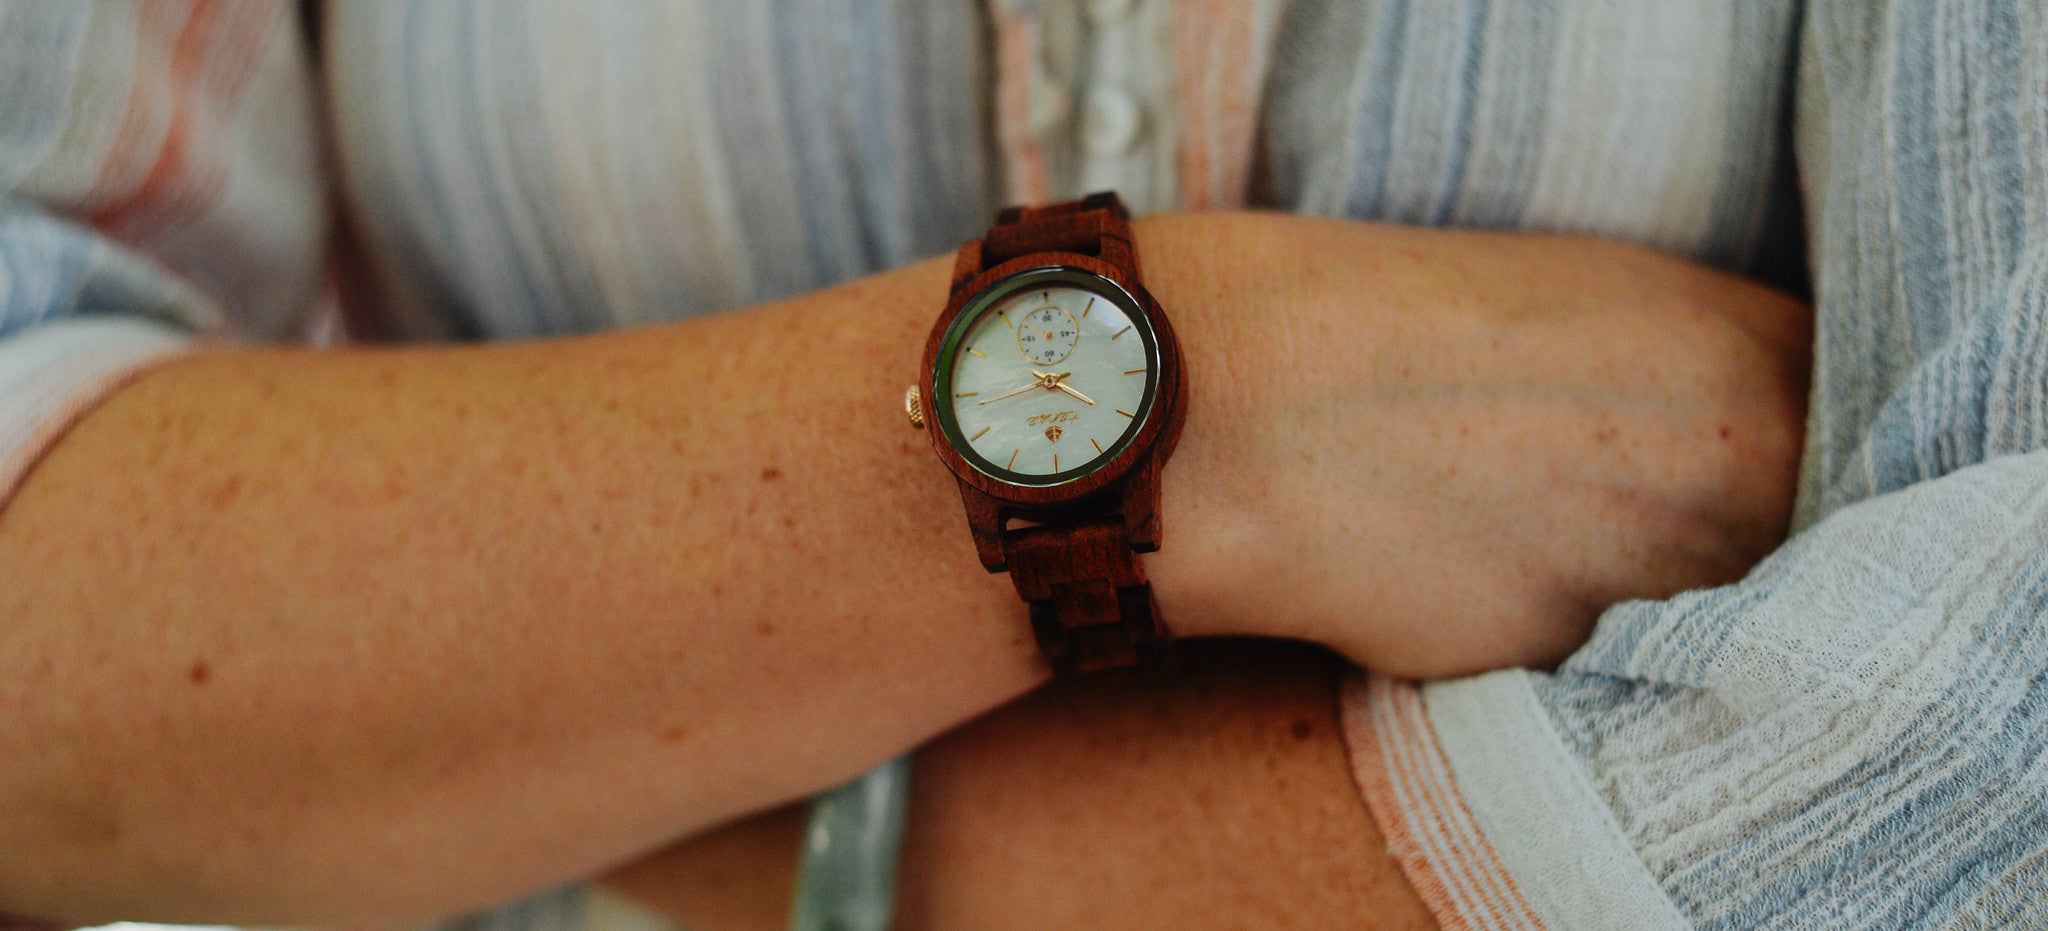 Tense Watches - The Small Hampton Watch